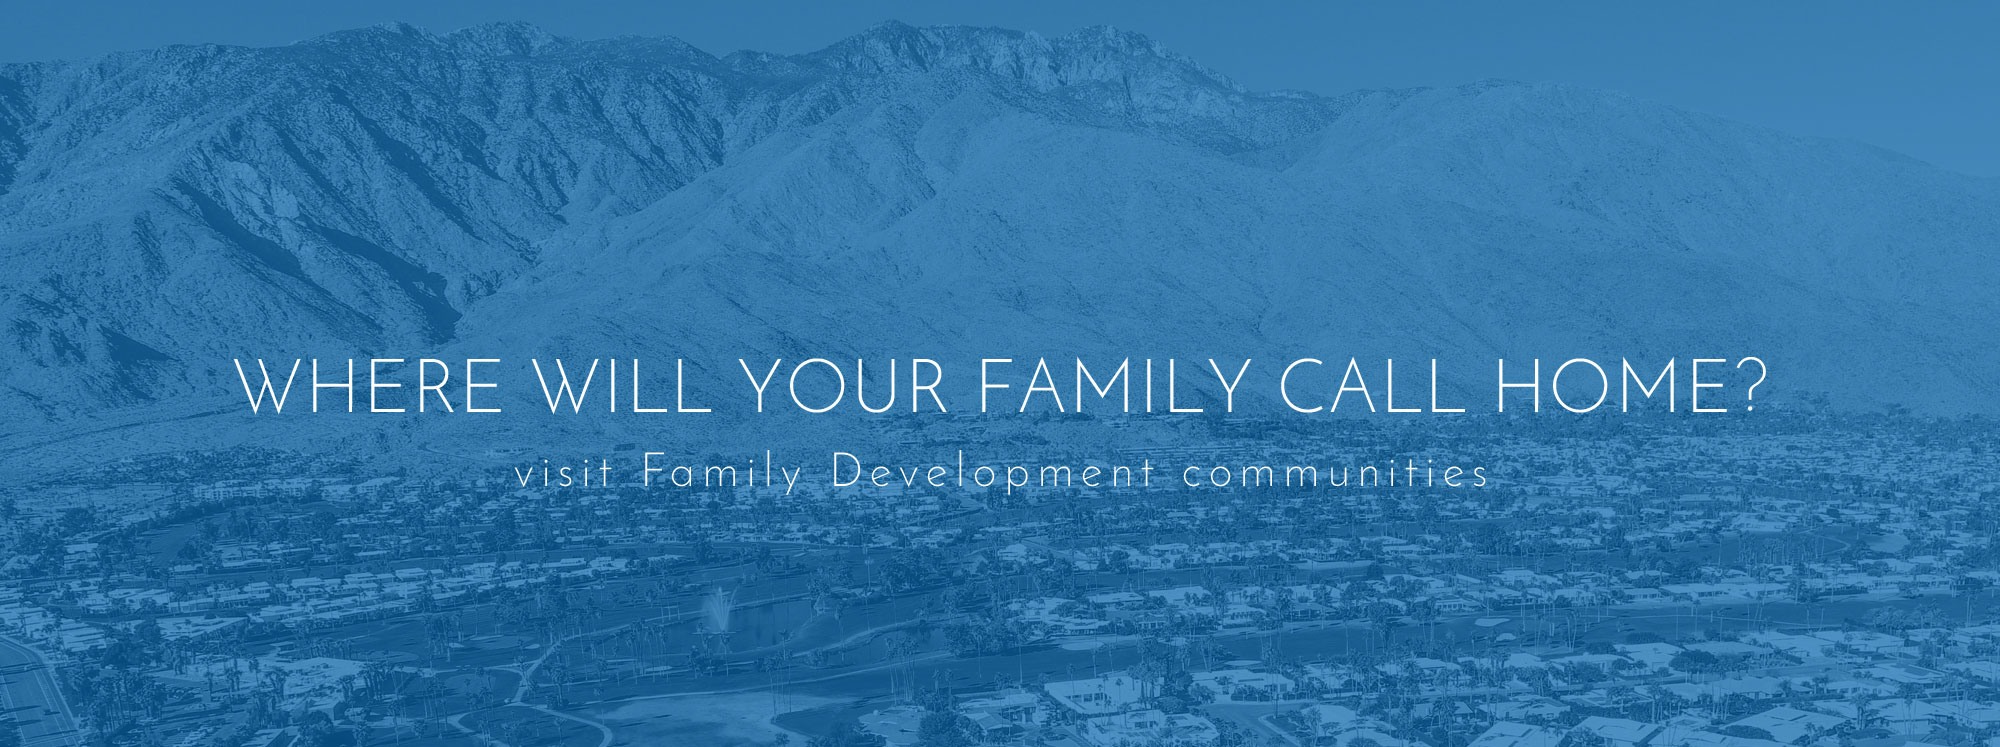 Family Development Communities